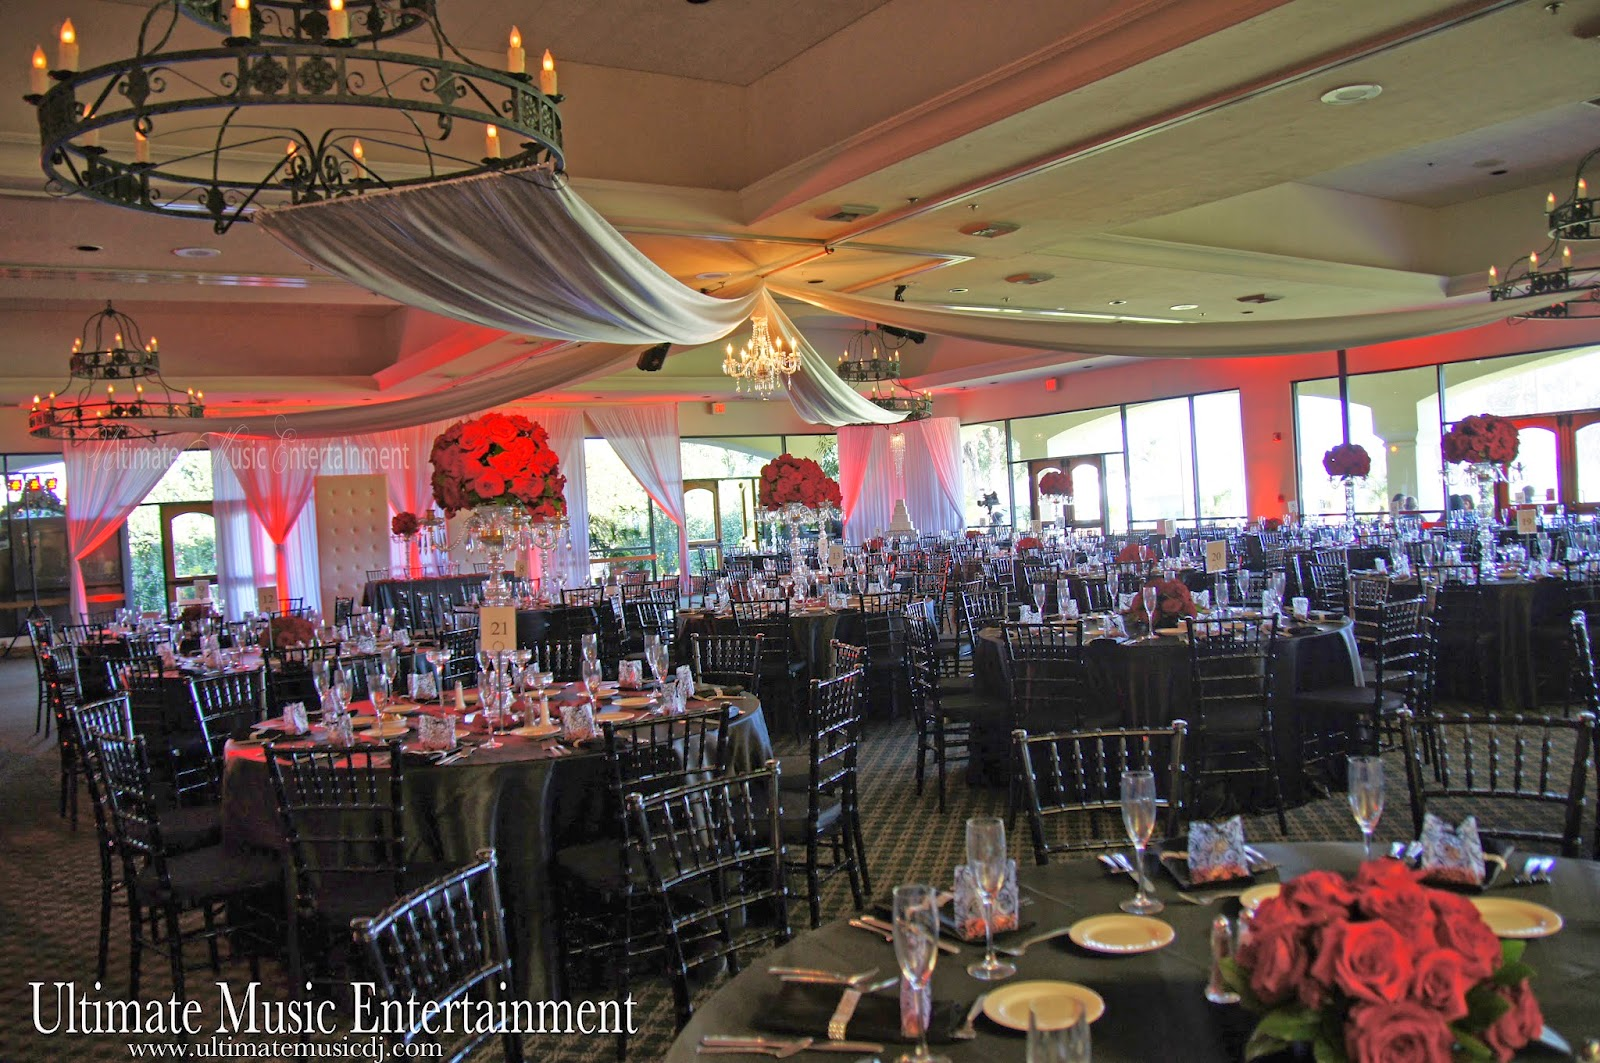 The Party Started With Sounds Of Ultimate Music Entertainment As Bride And